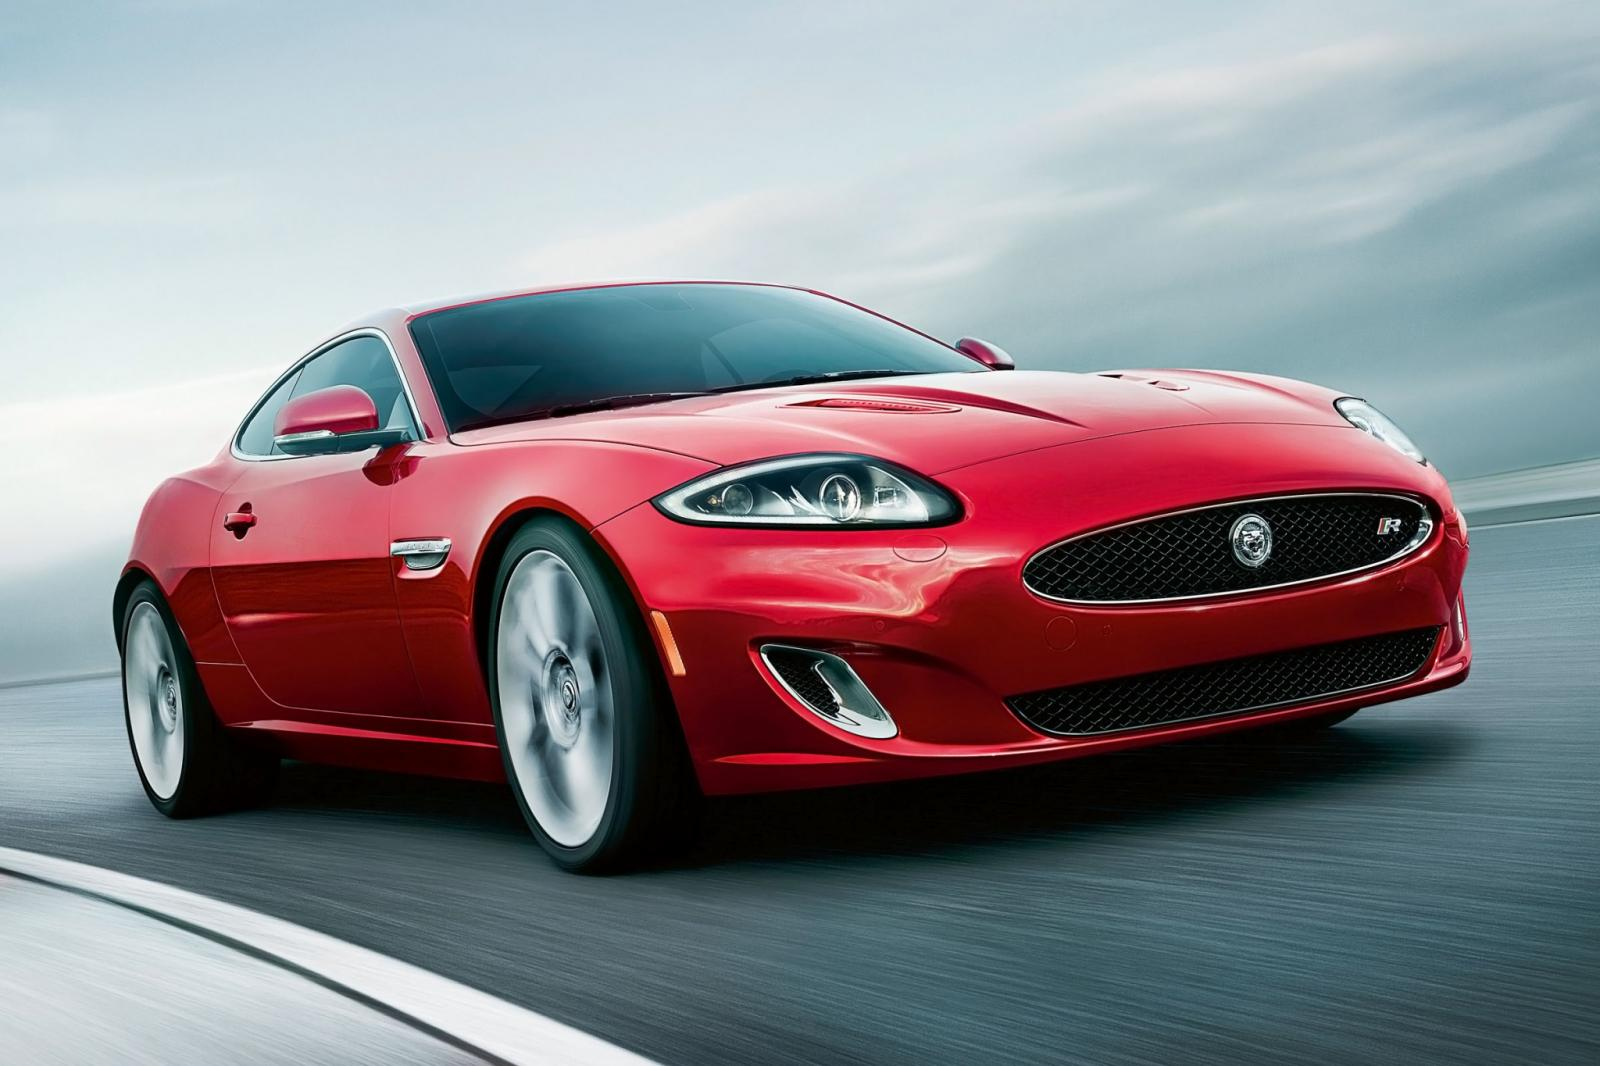 2014 jaguar xk information and photos zombiedrive. Black Bedroom Furniture Sets. Home Design Ideas